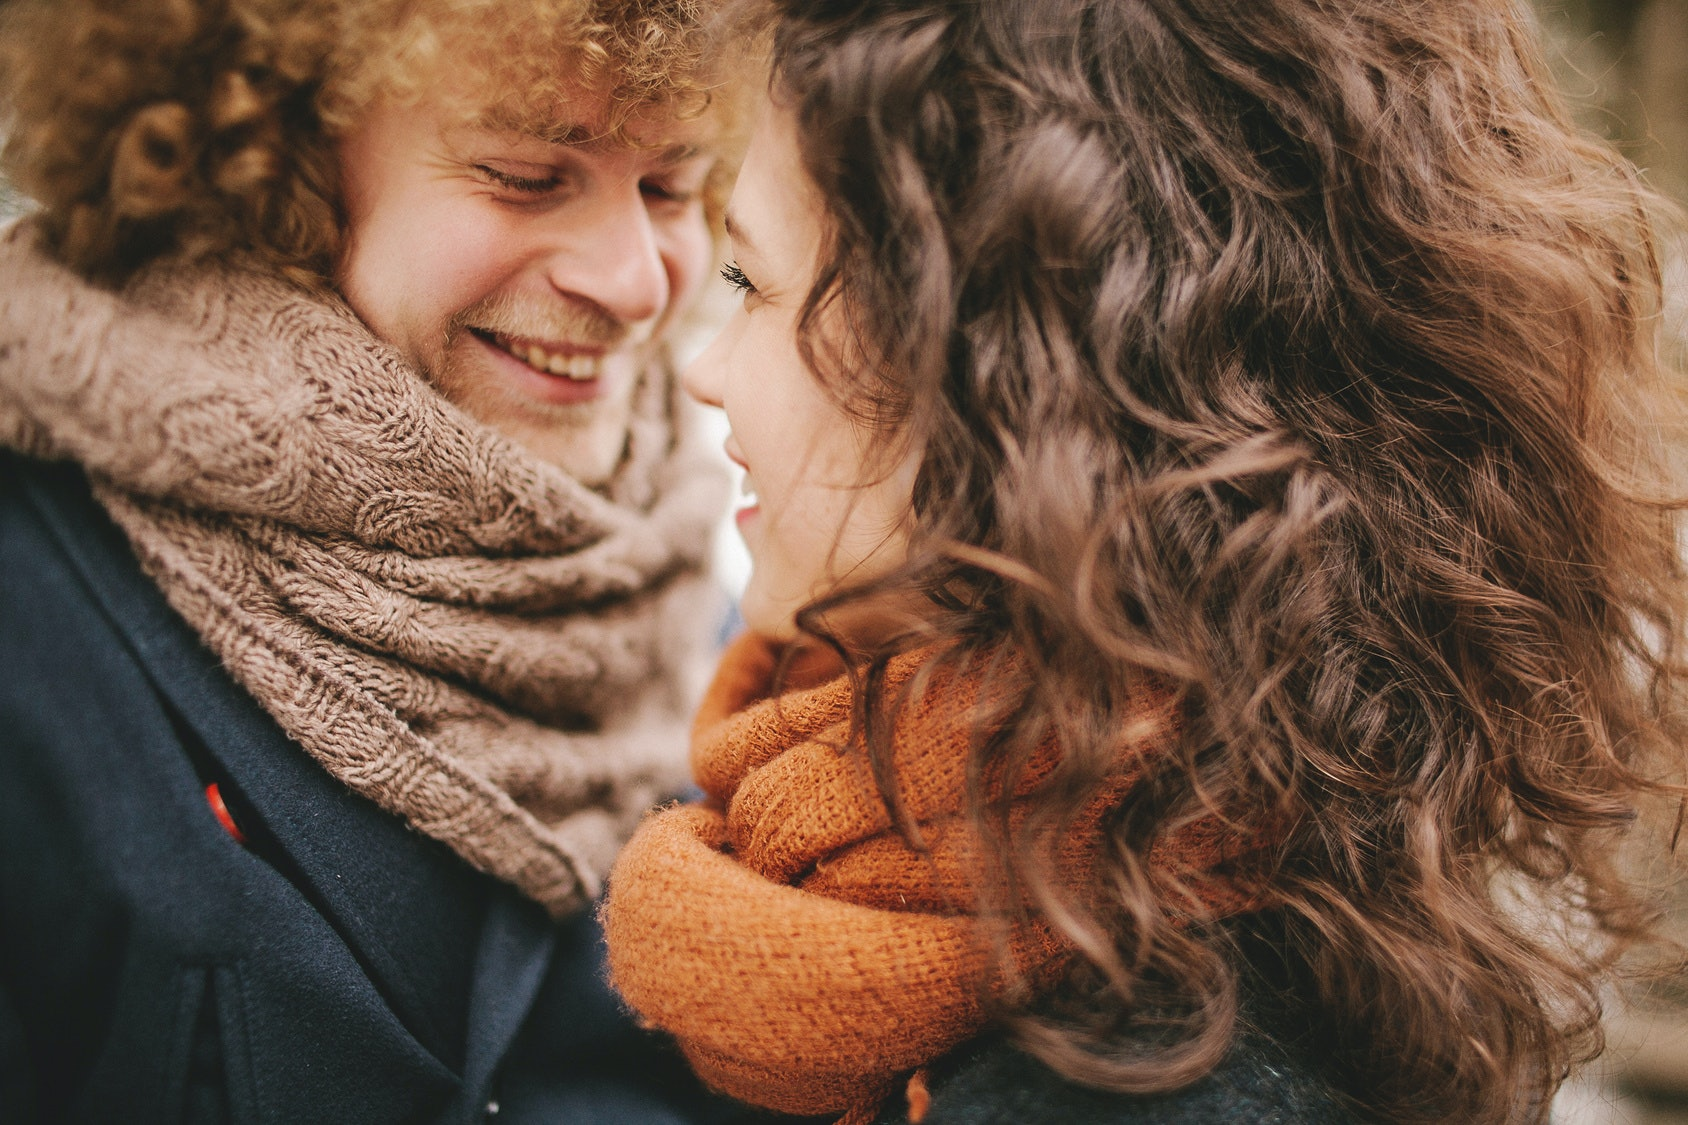 What to do when you start dating someone new